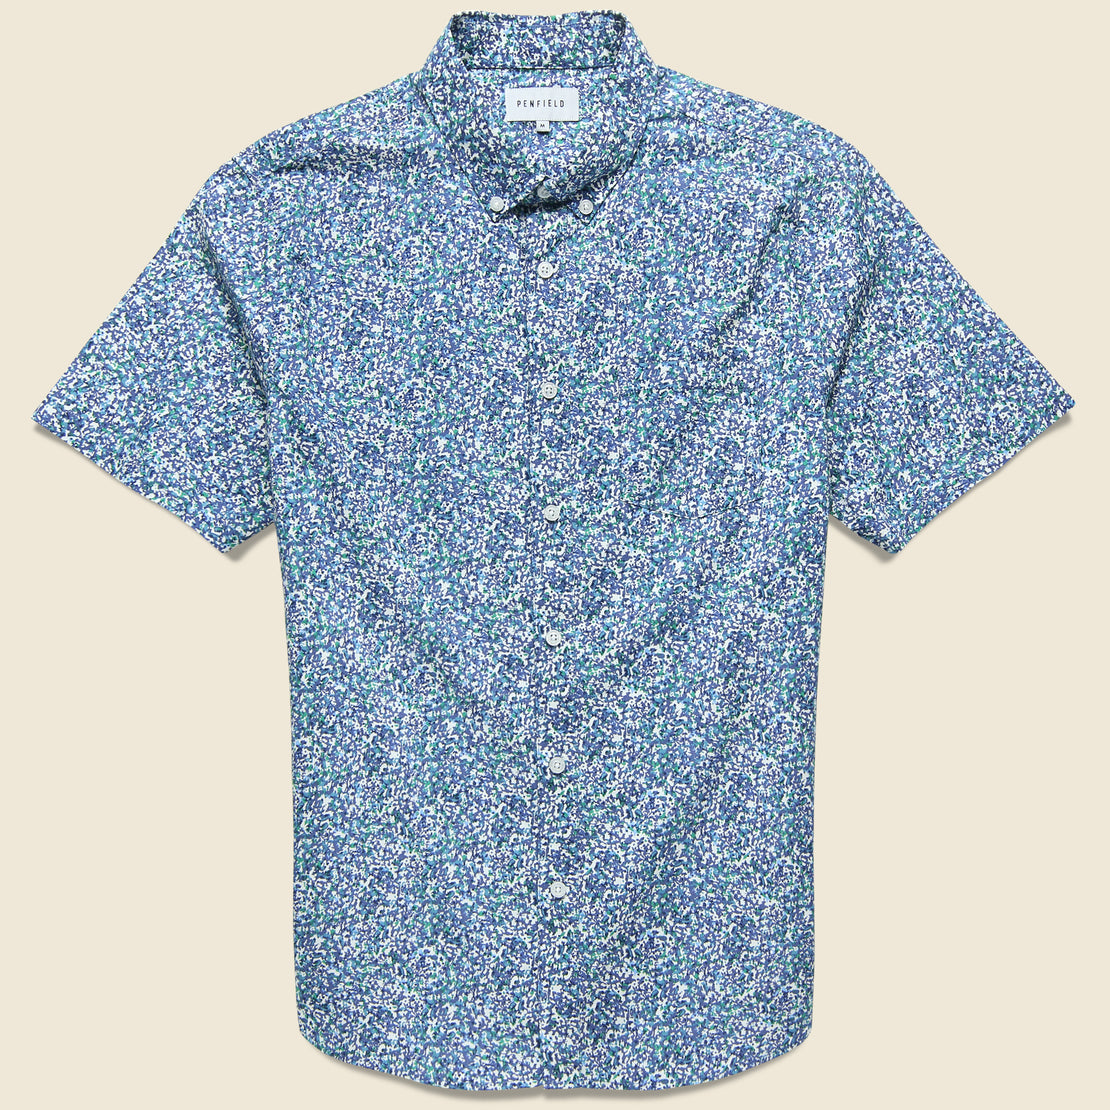 Penfield Tomah Shirt - Blue